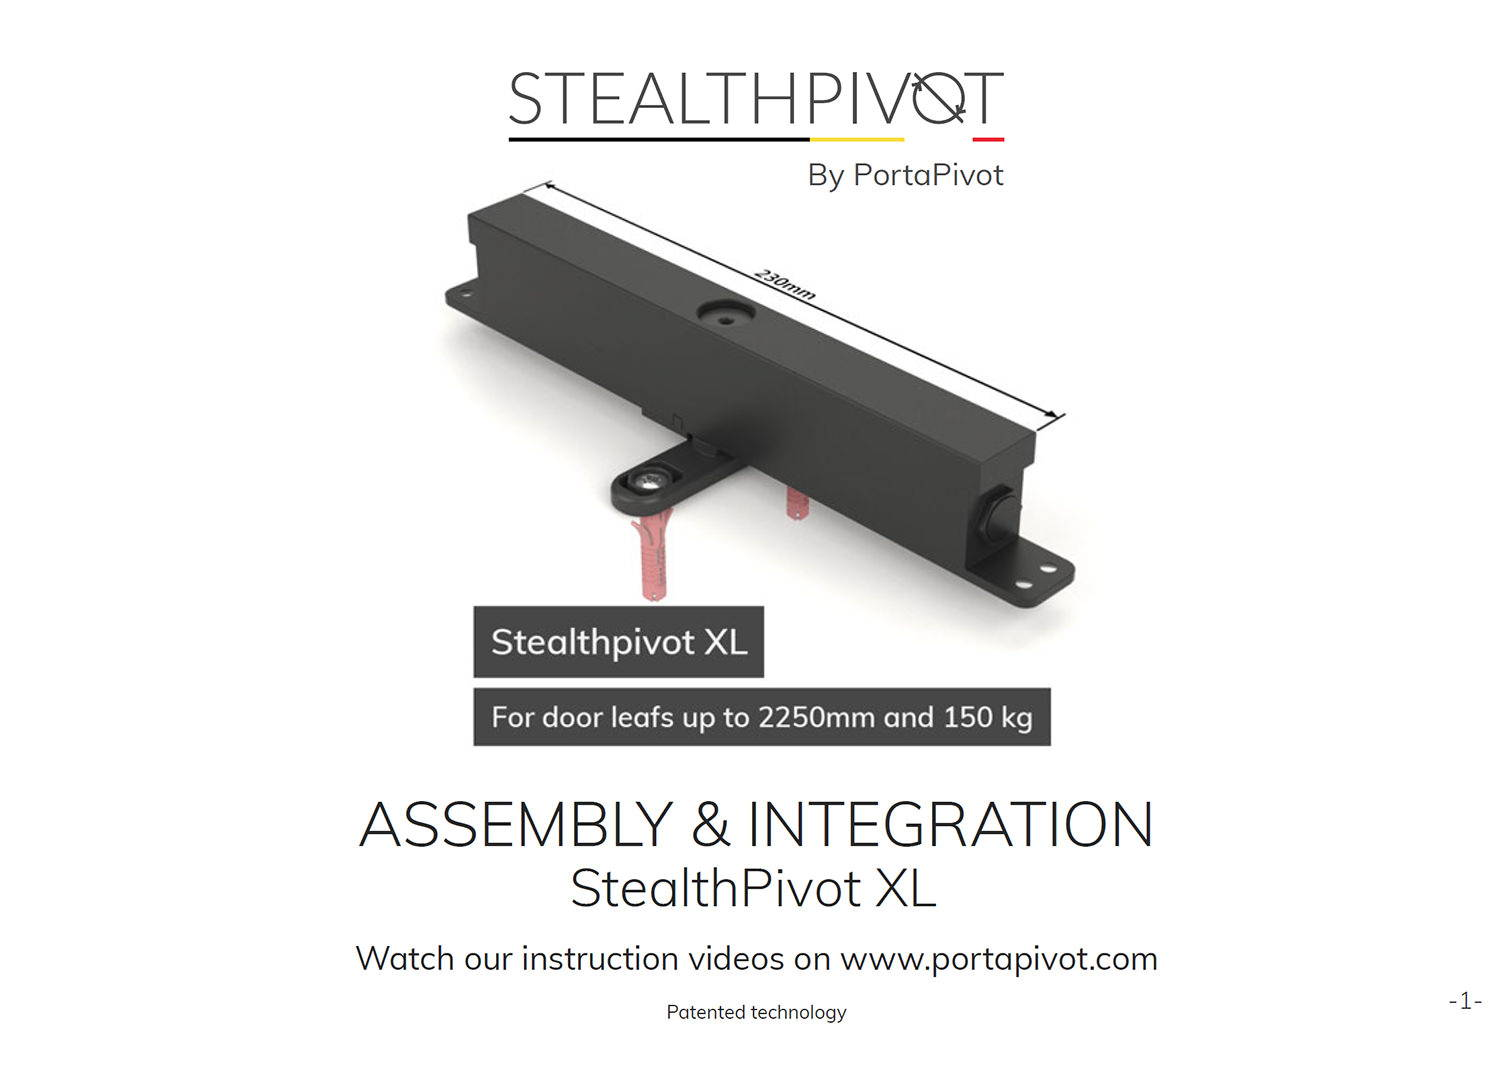 Stealth Pivot XL assembly and integration manual